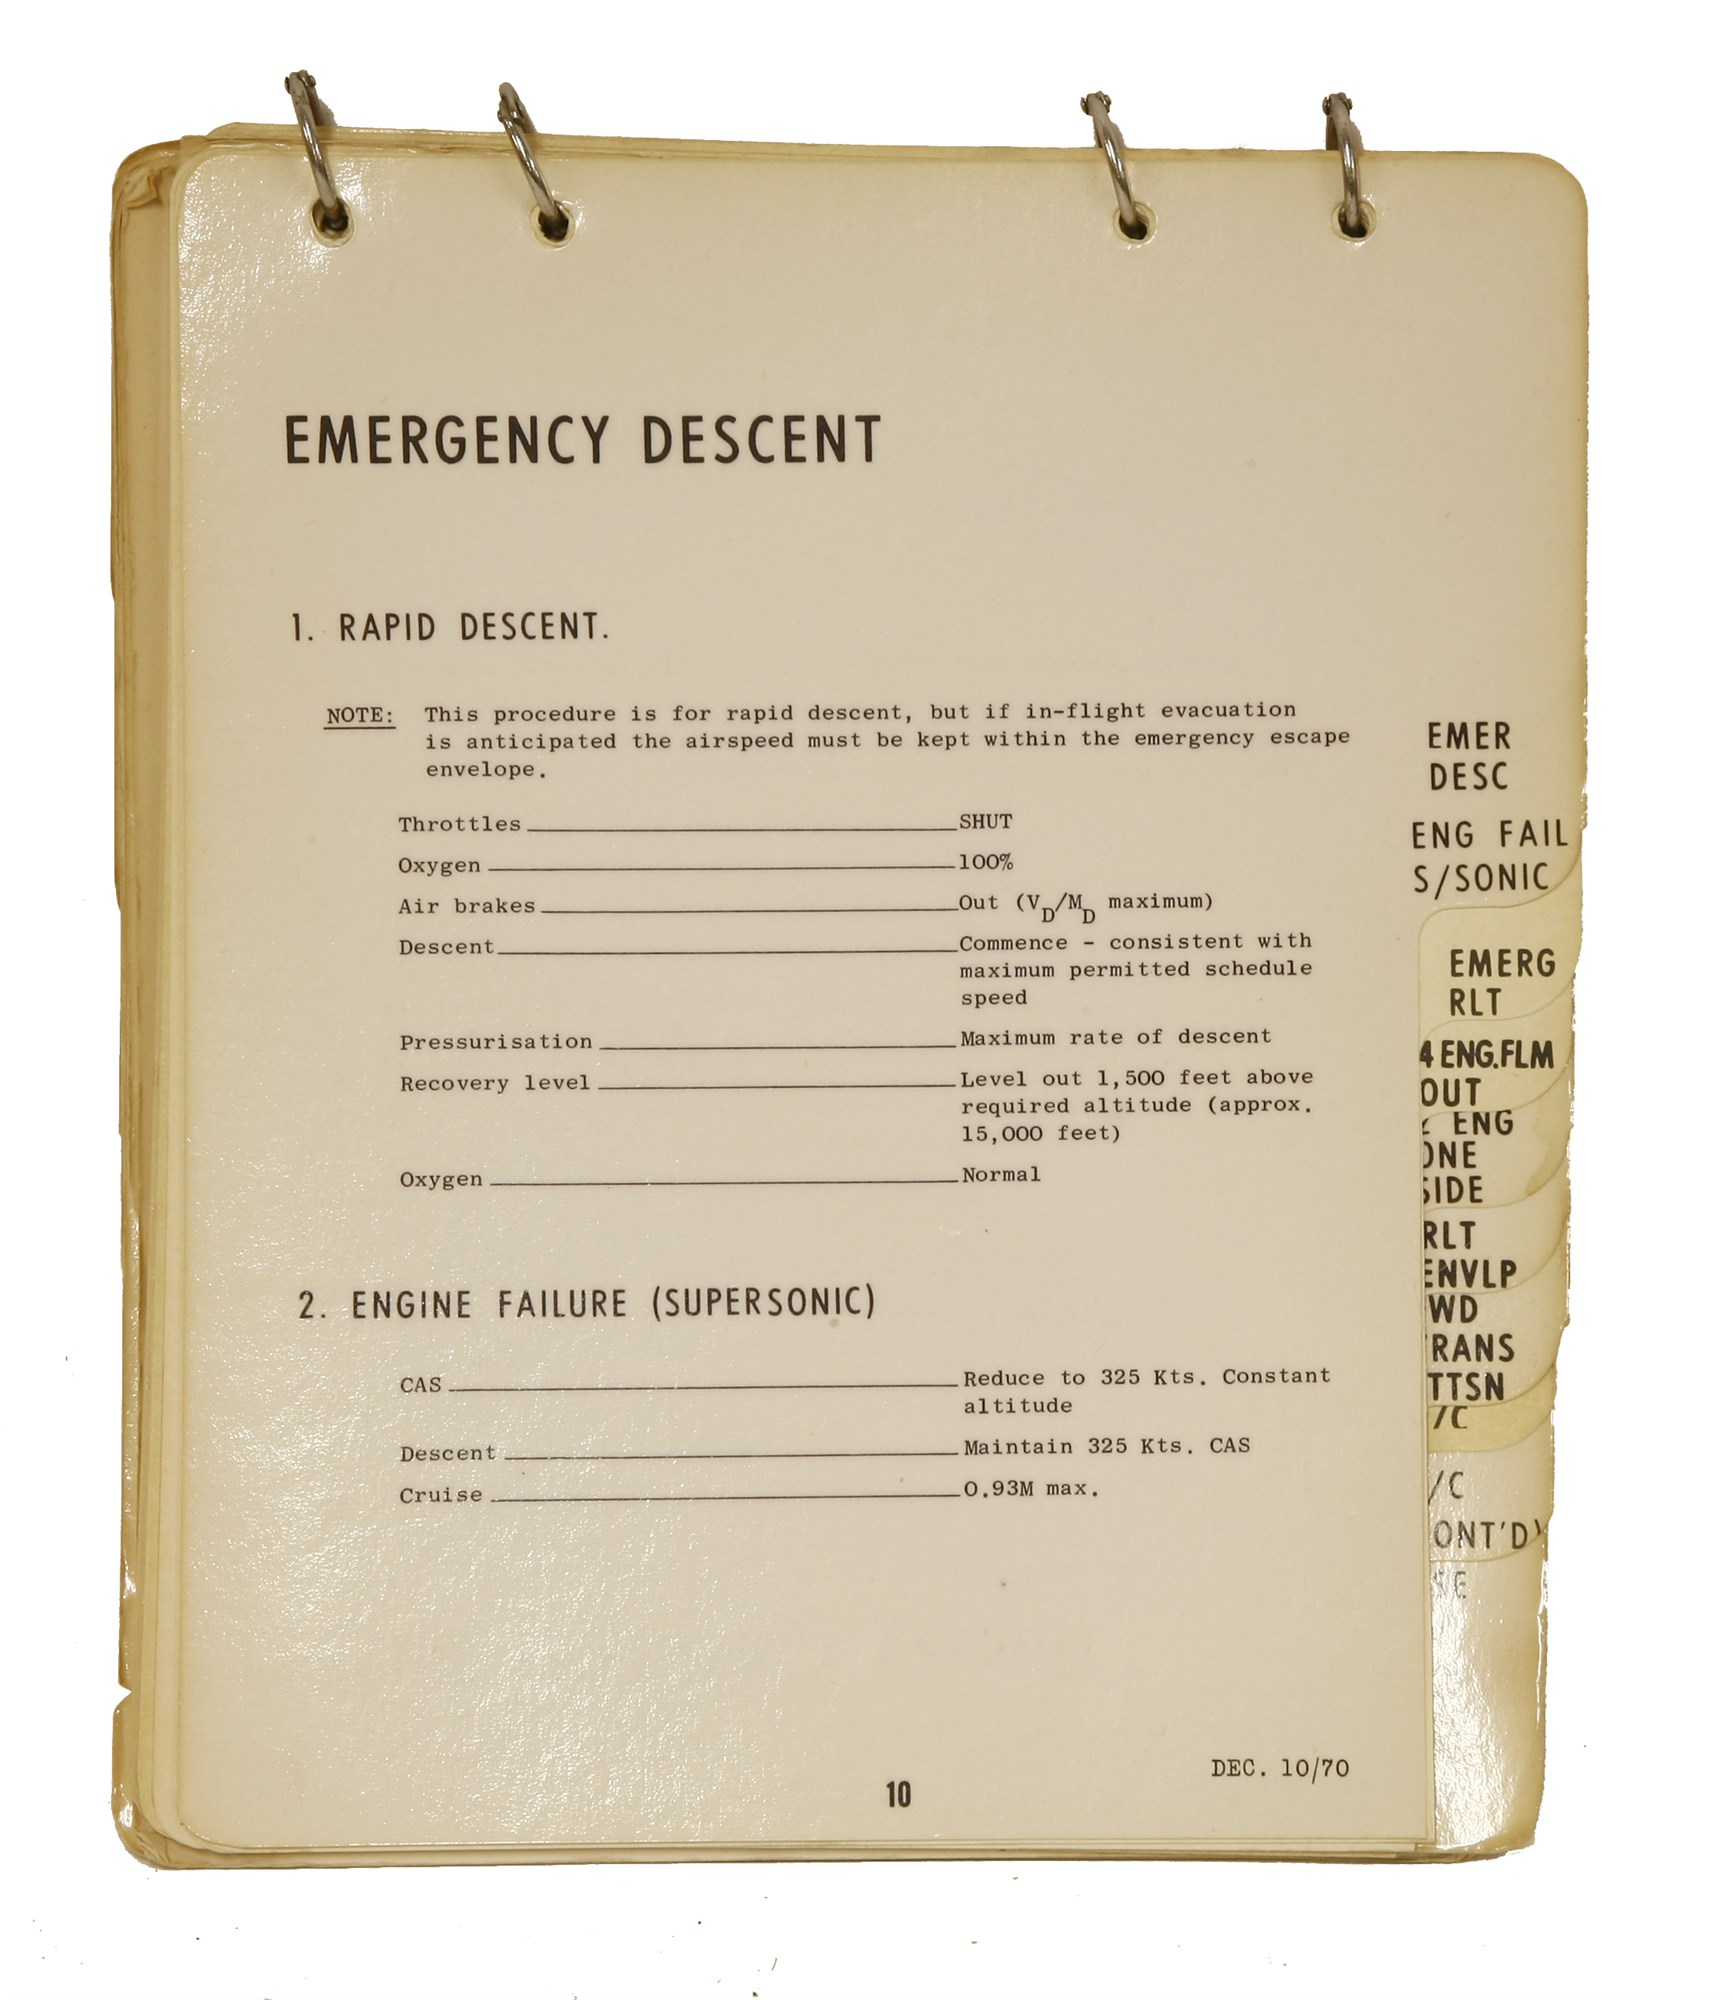 Concorde 002 'Emergency Procedures Manual' - The Tim Wonnacott Collection